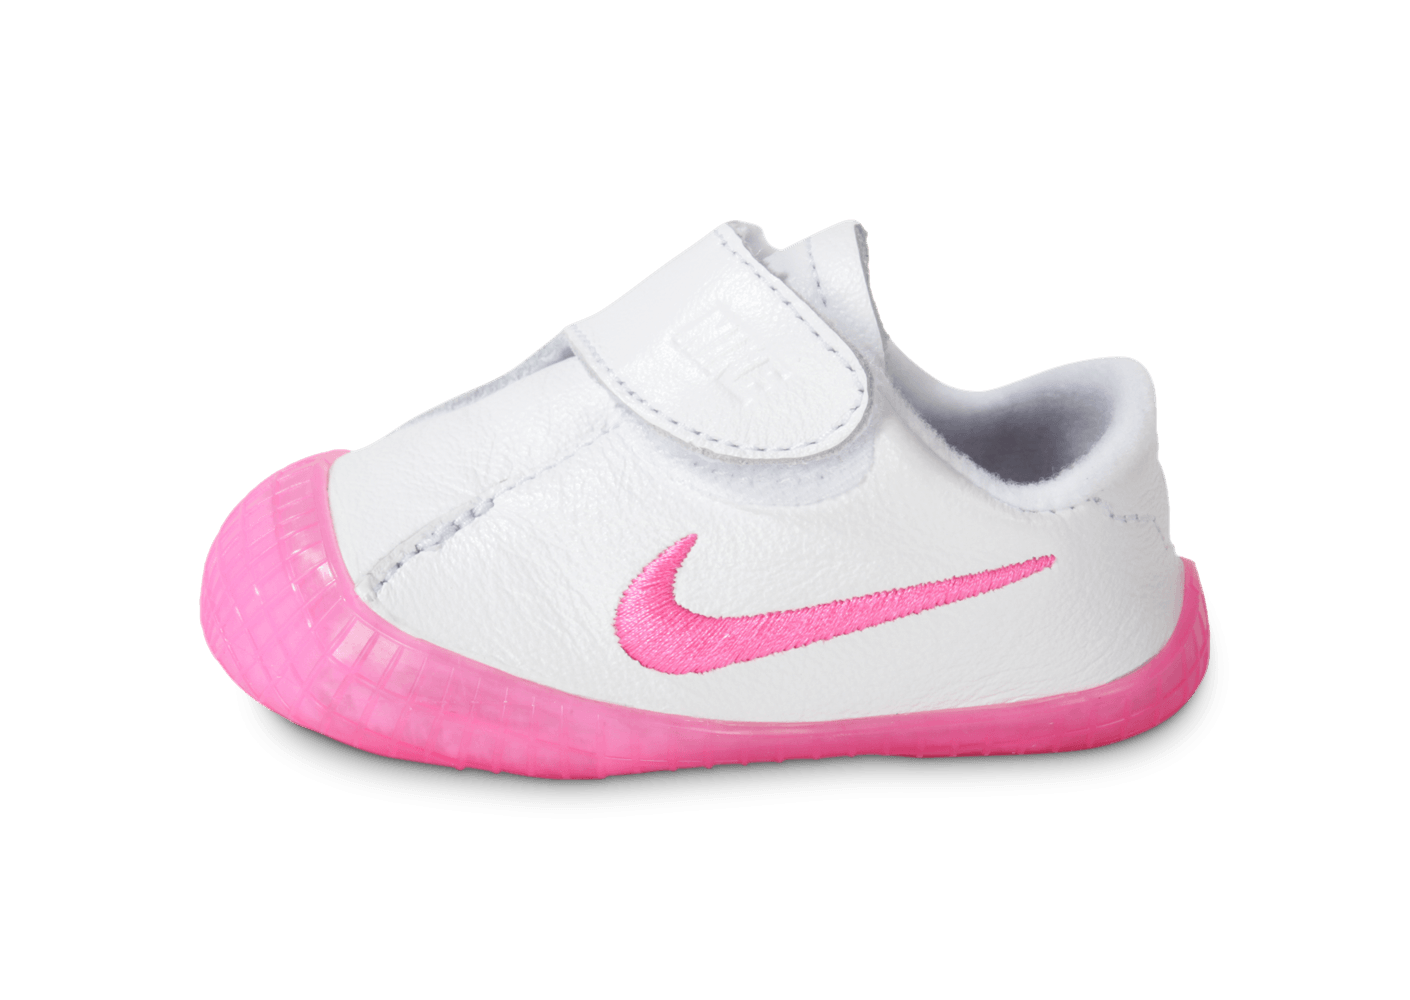 new arrival 33344 00610 Nike Crib Waffle Bébé Blanche Et Rose - Chaussures Chaussures - Chausport